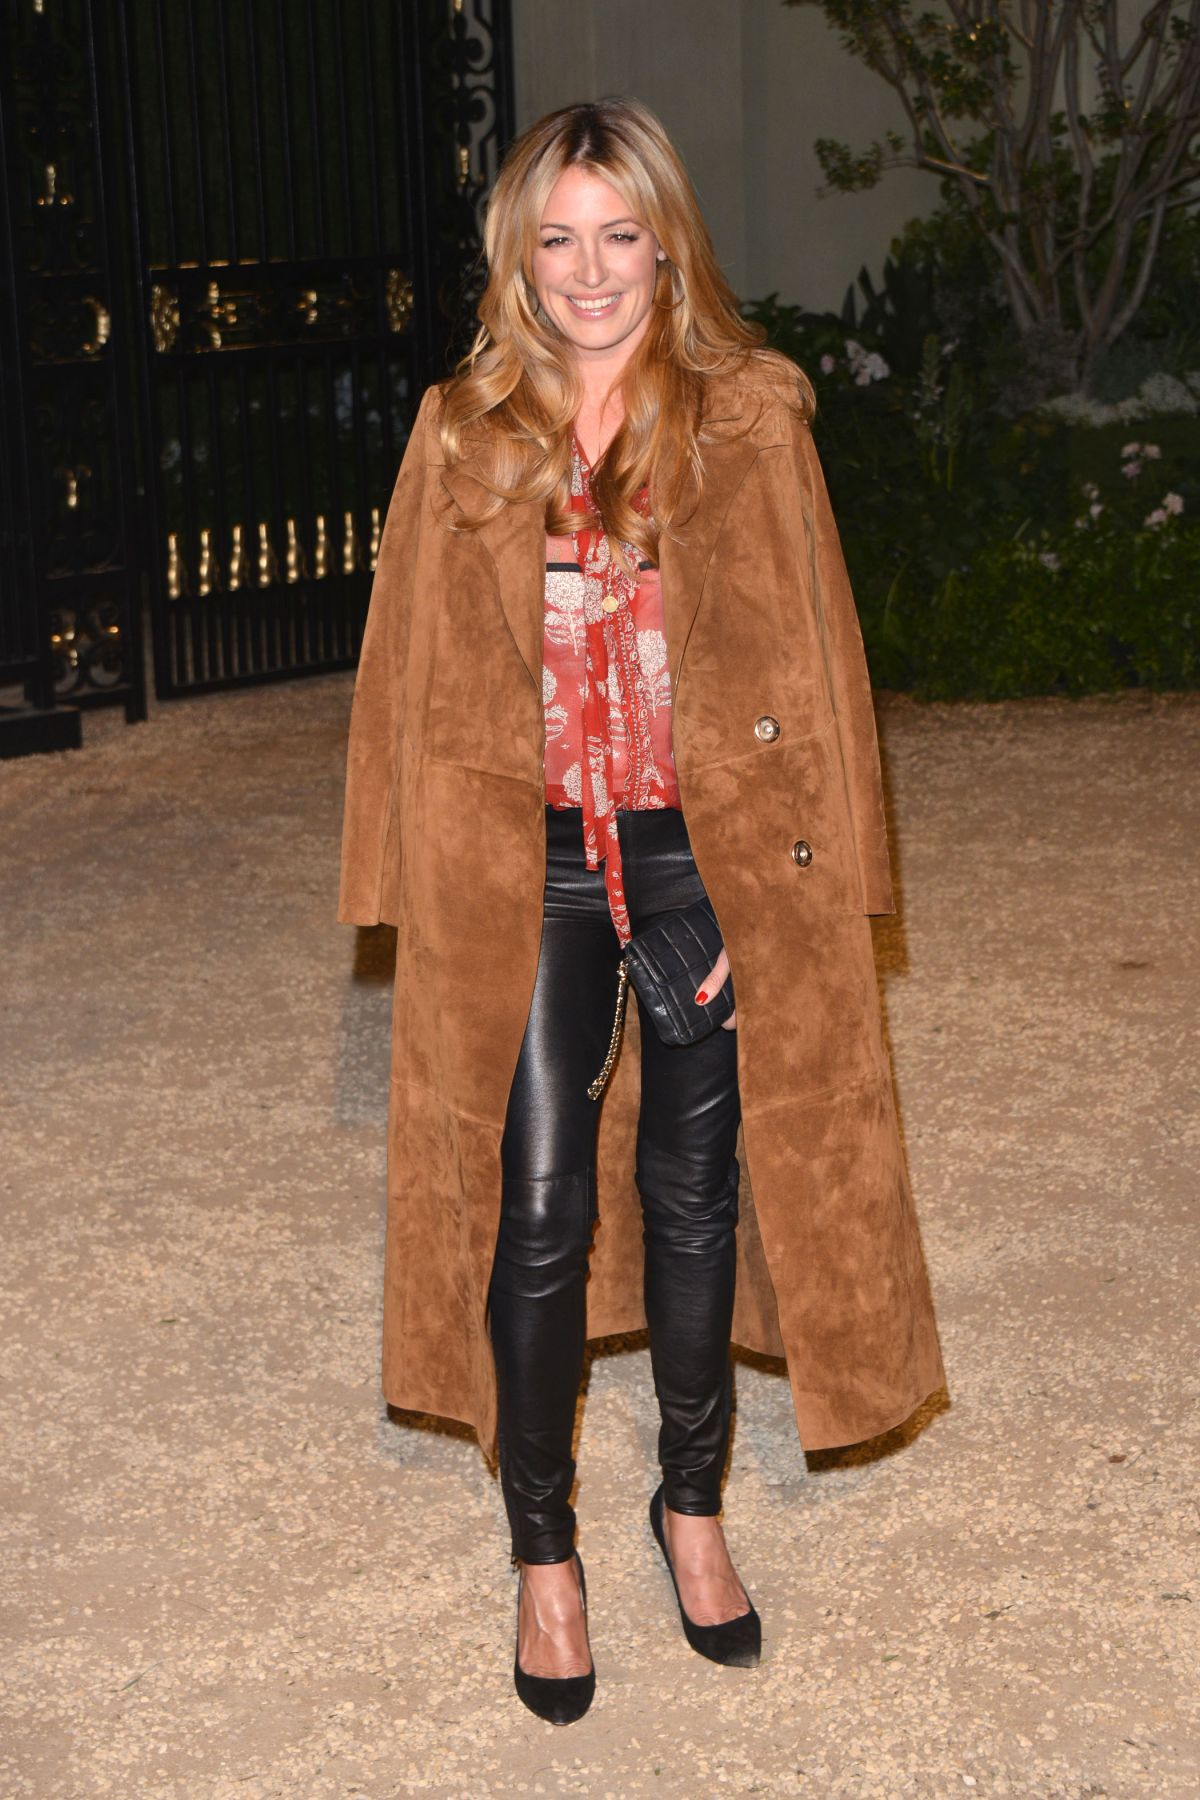 CAT DEELEY at Burberry London in Los Angeles Event in Los Angeles